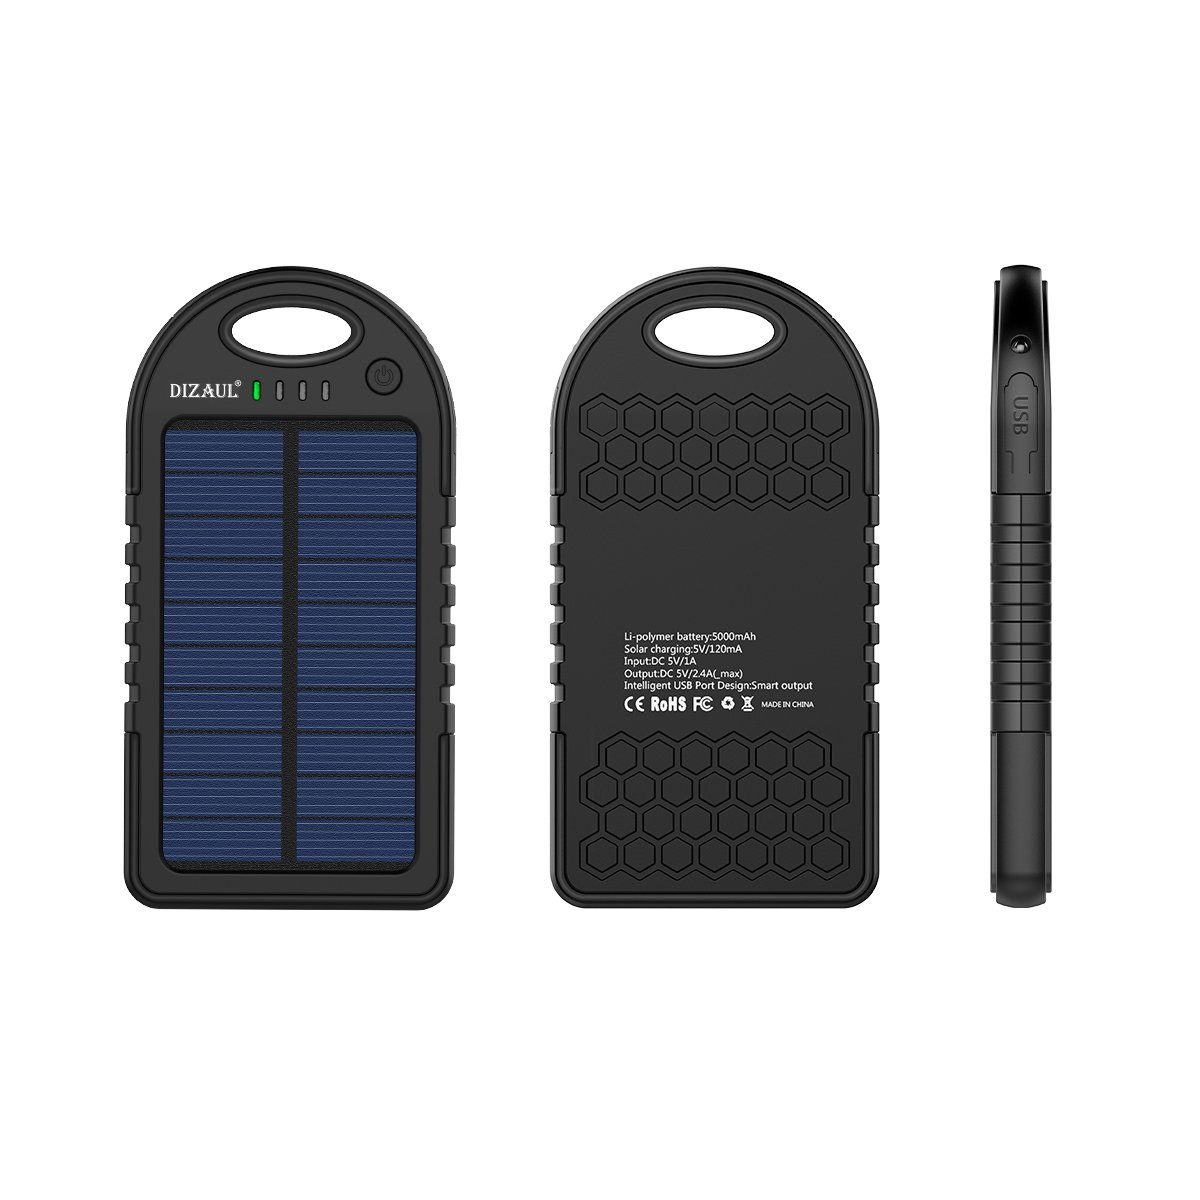 Solar Charger, Dizaul 5000mAh Portable Solar Power Bank Waterproof/Shockproof/Dustproof Dual USB Battery Bank for Cell Phone, Samsung, Android Phones, Windows Phones, GoPro Camera, GPS and More by dizauL (Image #4)